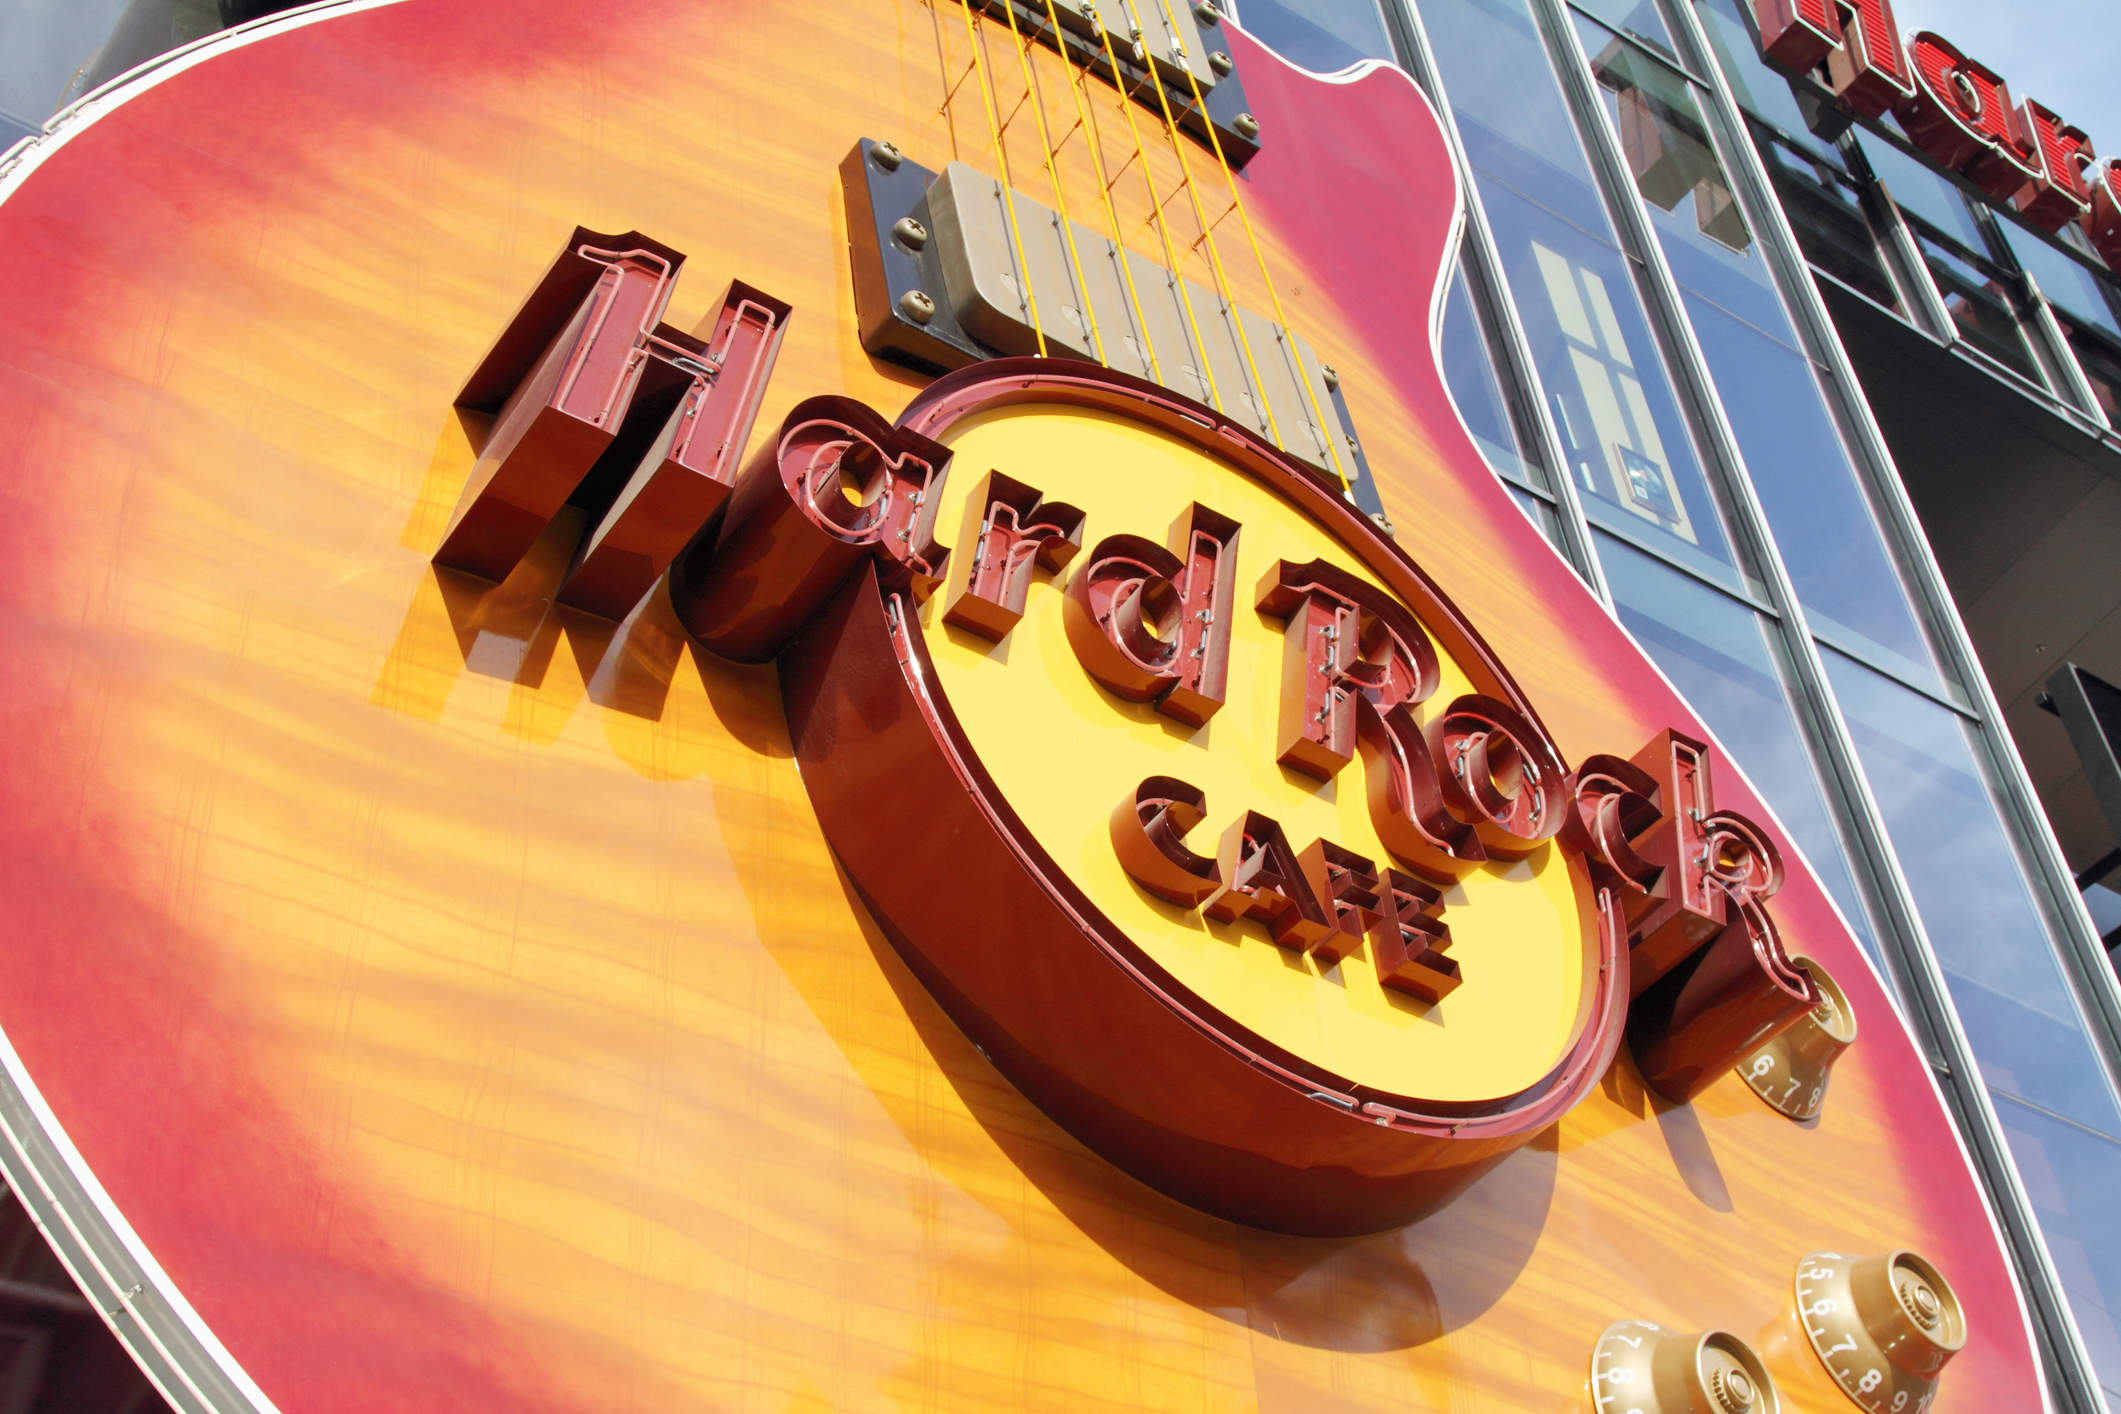 Should you be feeling lucky, the  Hard Rock Hotel & Casino  is the perfect adults playground.